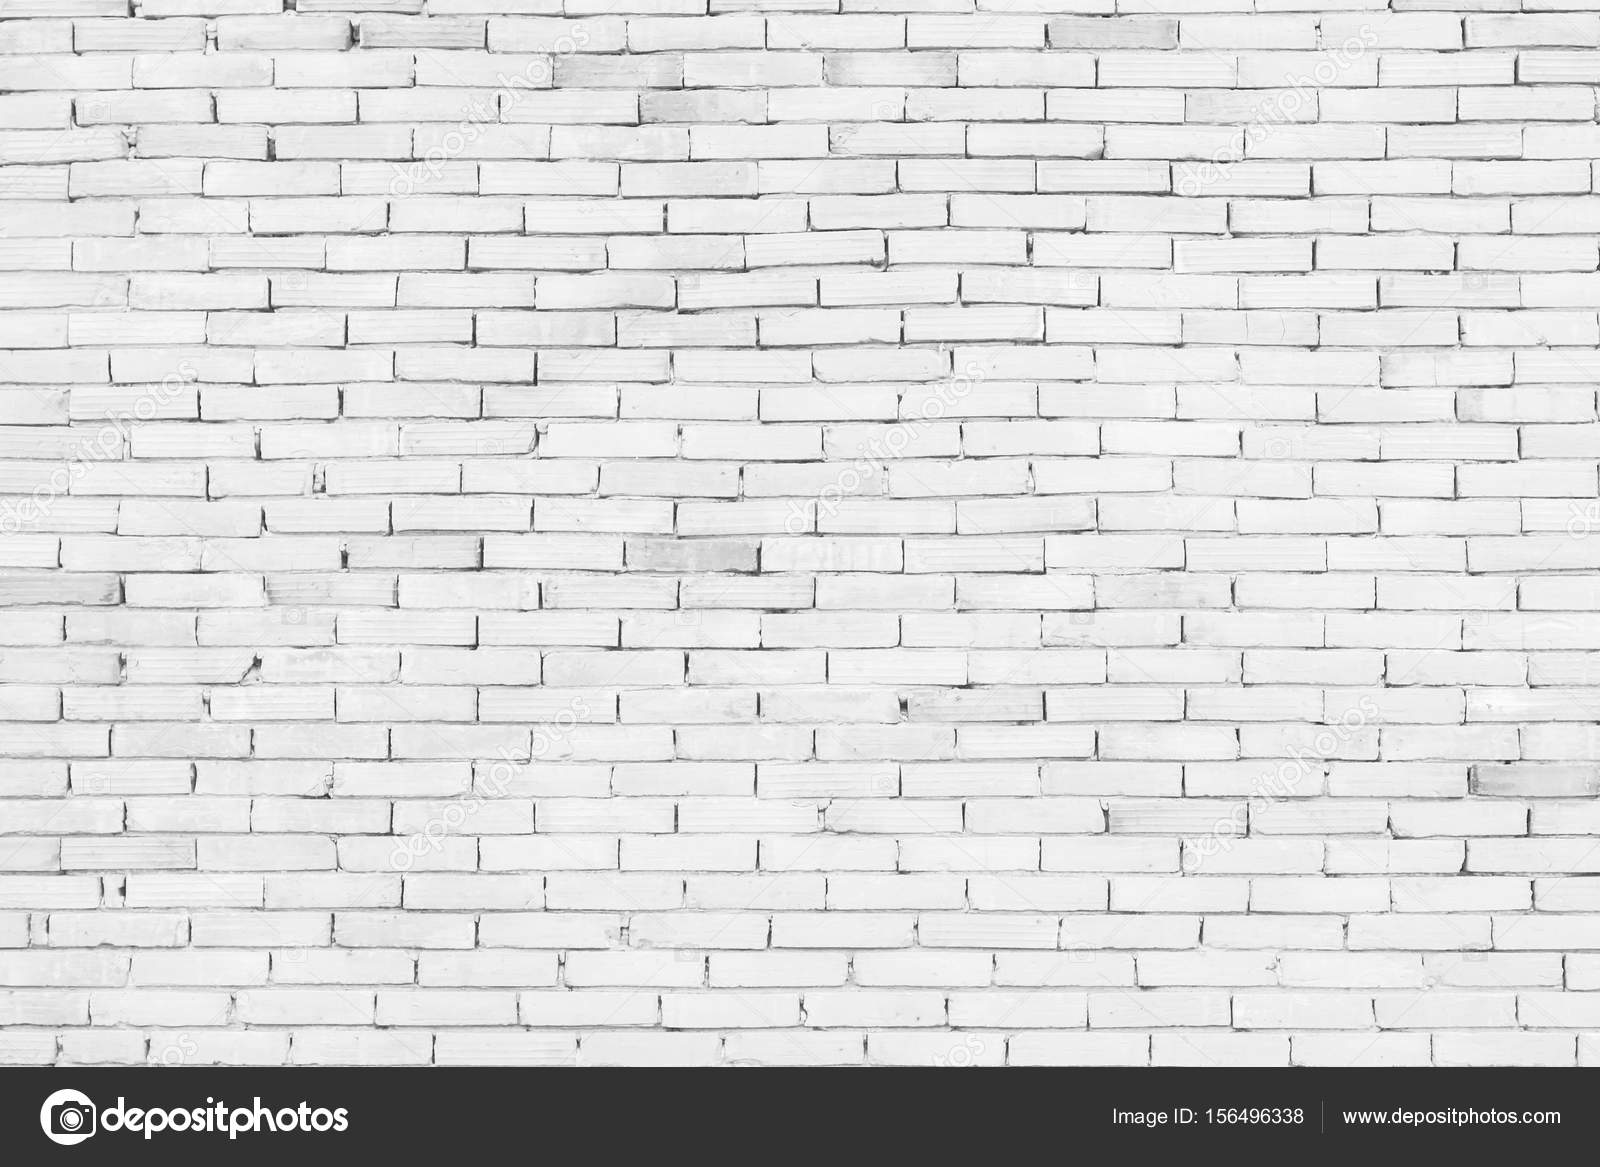 Black And White Brick Wall Texture Background Brick Brickwork 1600x1167 Download Hd Wallpaper Wallpapertip